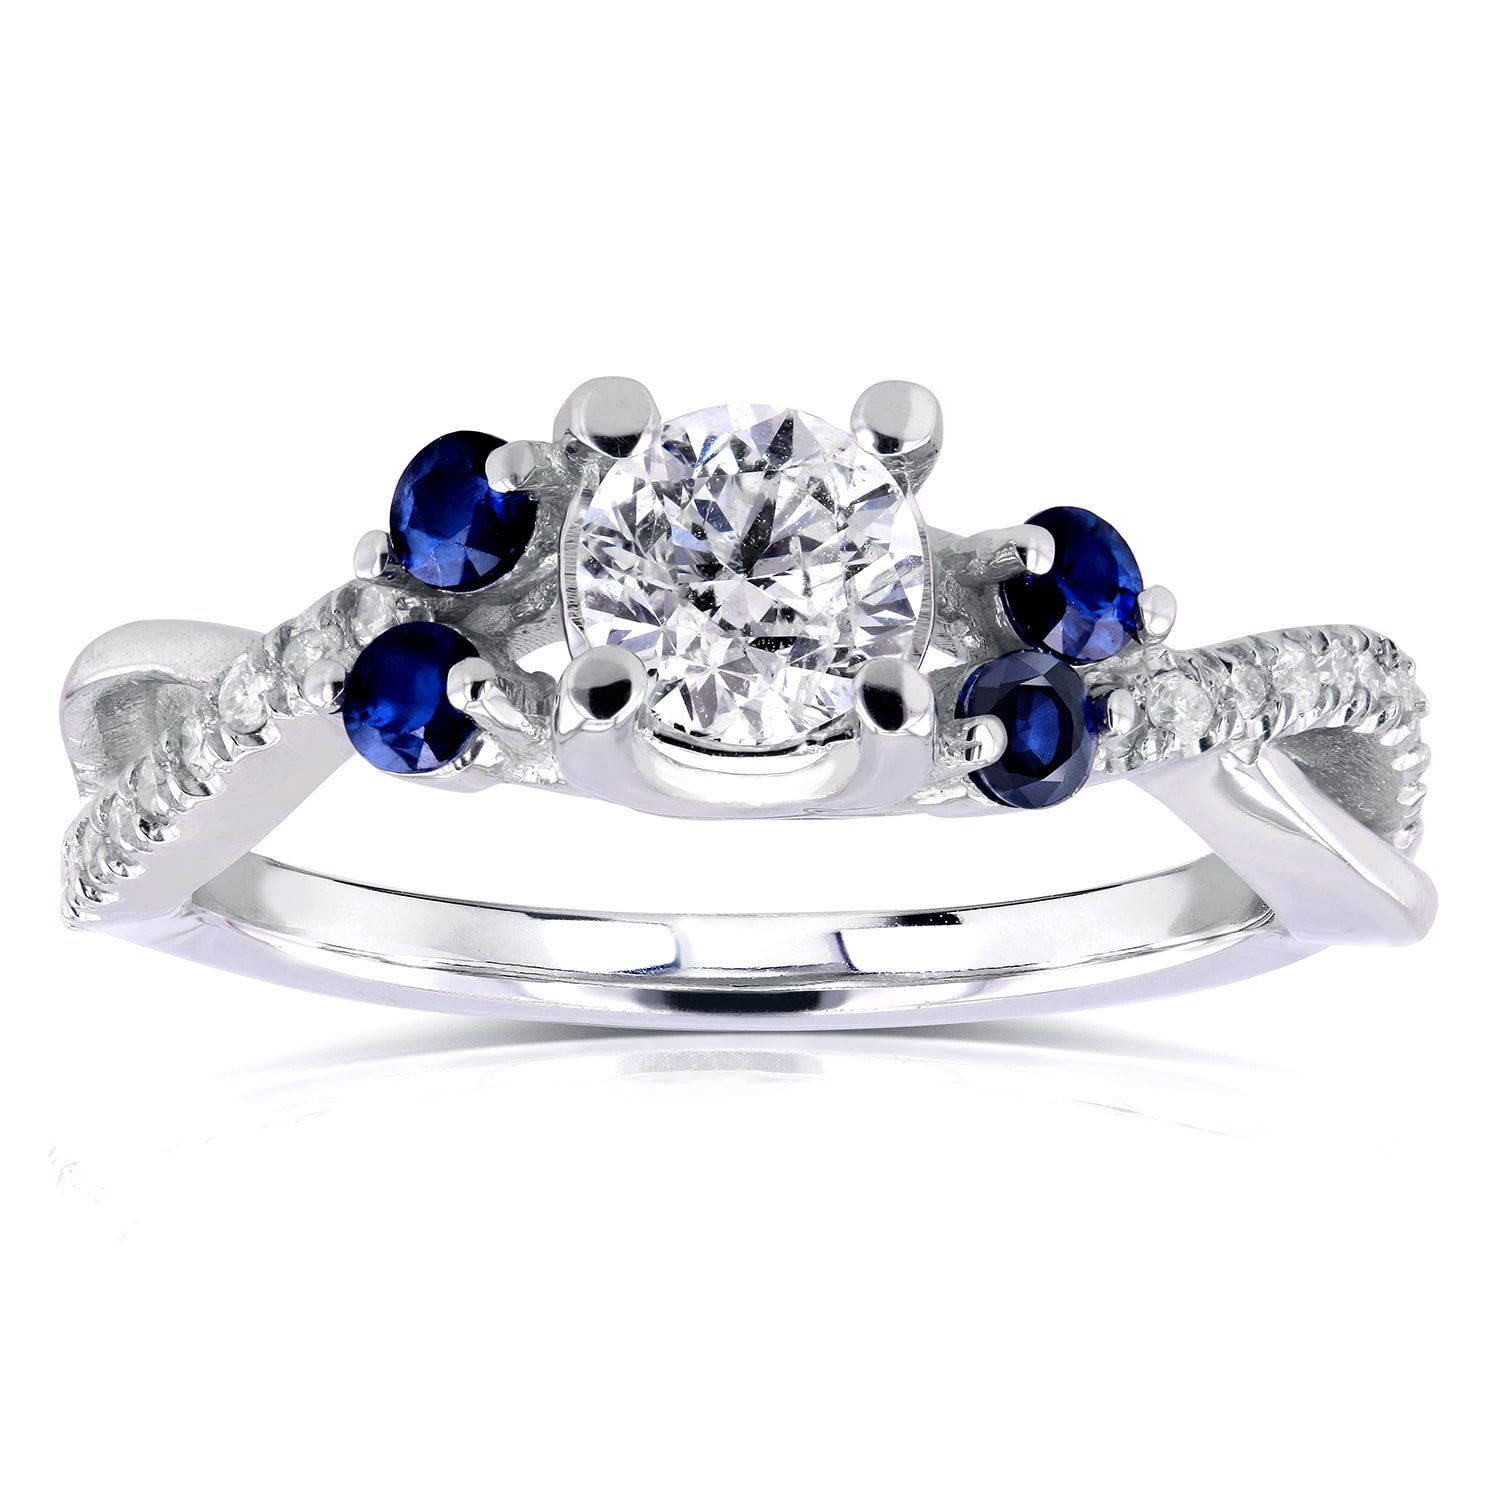 gift color middleton plated ring engagement kate cz blue highness box sapphire jg bling diana with jewelry silver oval crystal